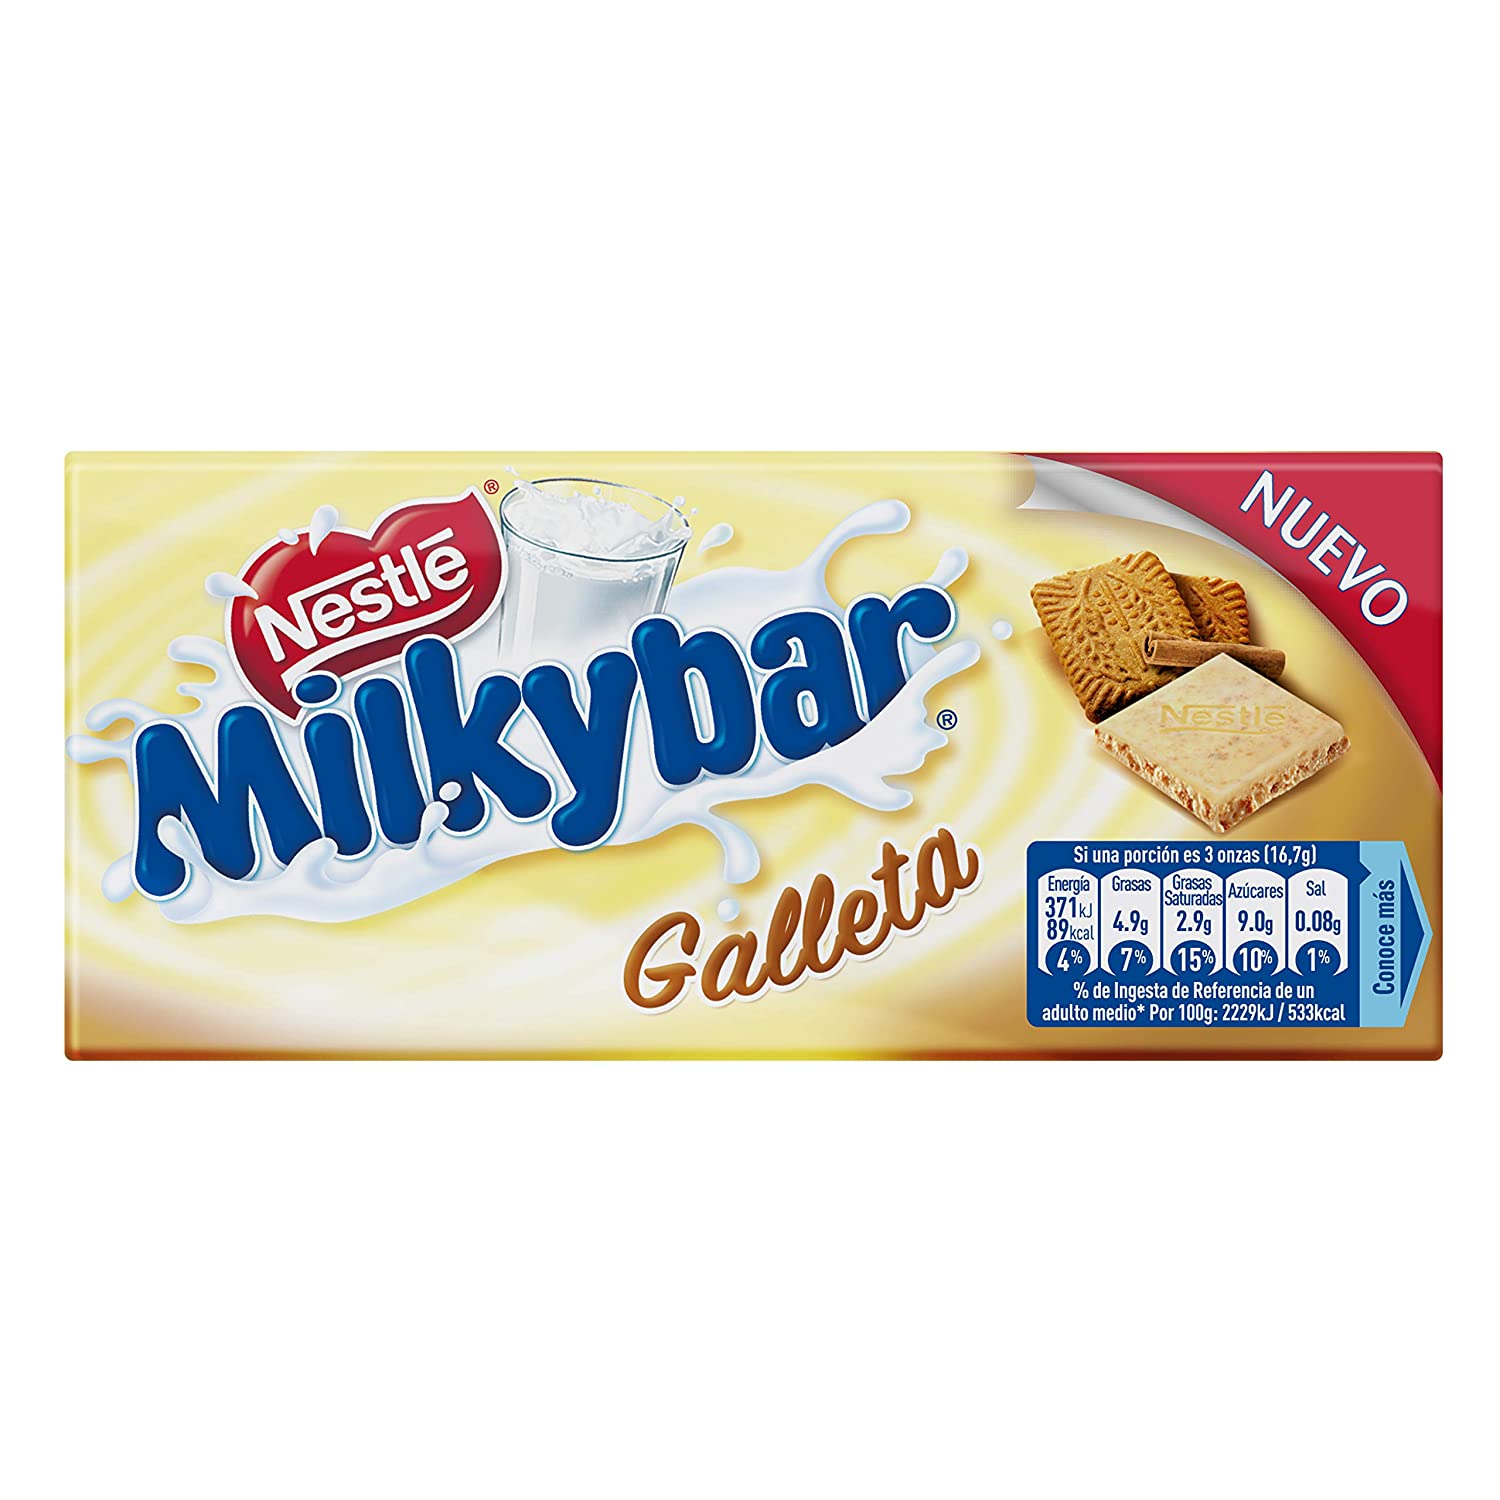 Nestlé Milkybar Chocolate Blanco con galleta - Tableta de chocolate blanco 20x100g: Amazon.es: Alimentación y bebidas